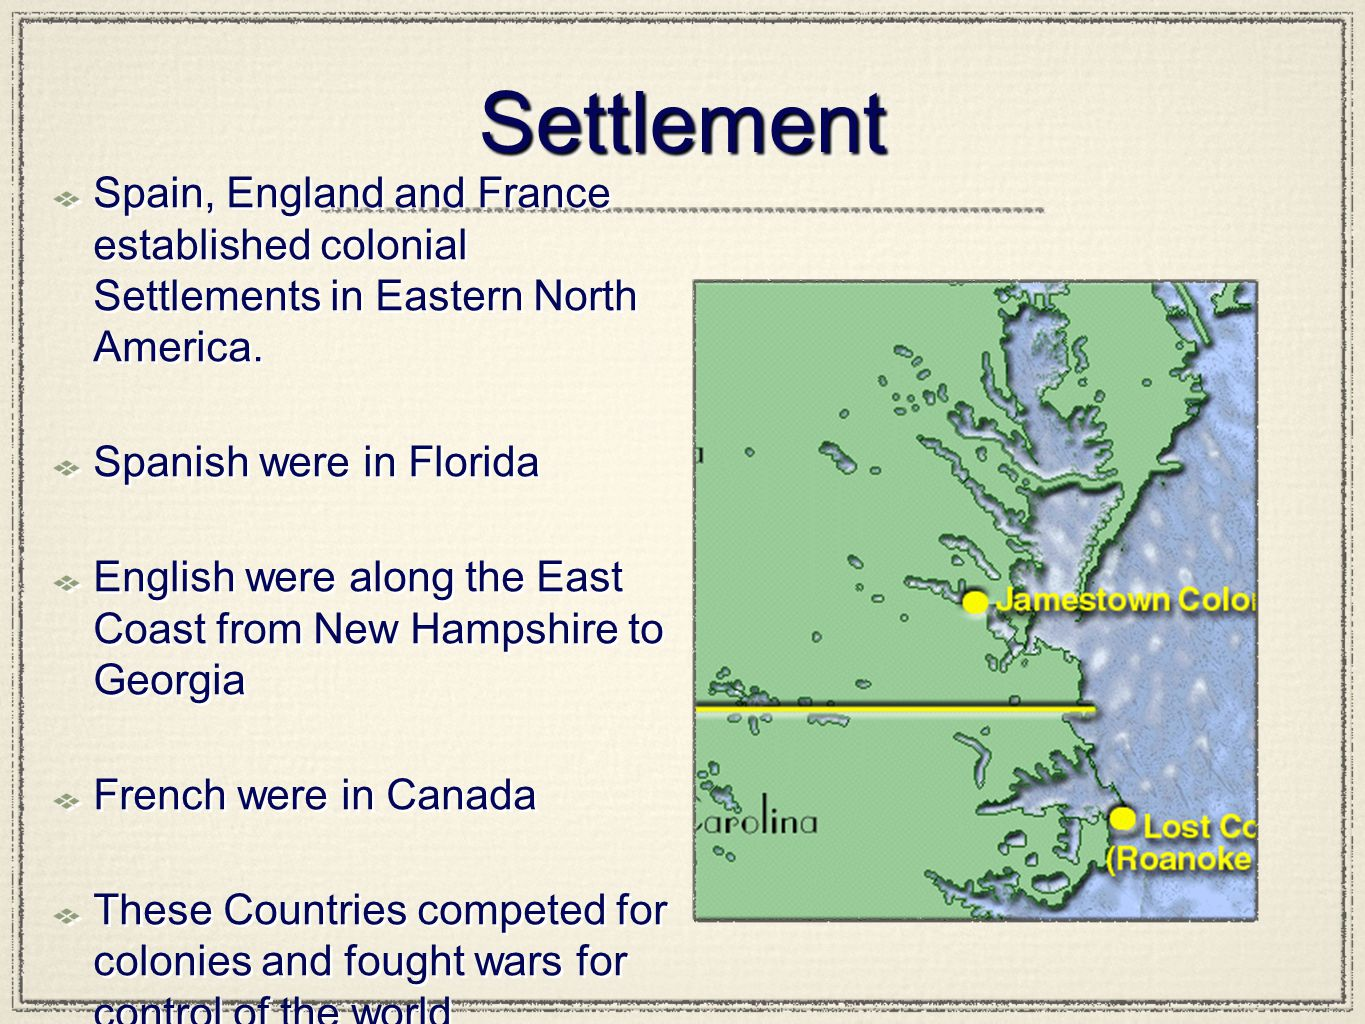 Settlement Spain, England and France established colonial Settlements in Eastern North America. Spanish were in Florida.